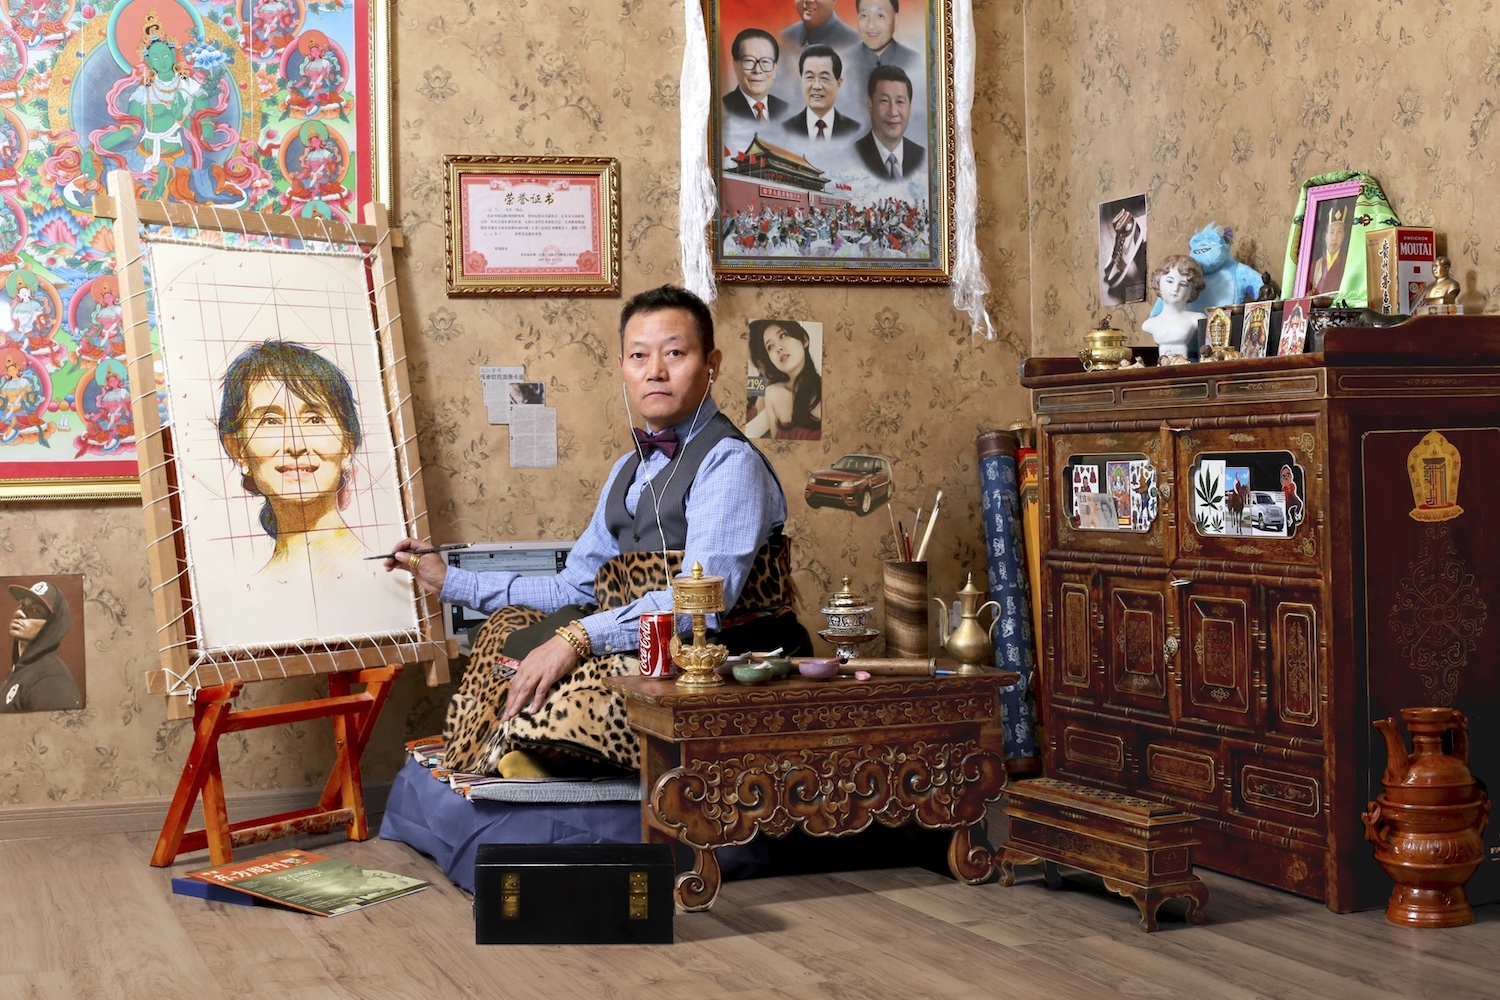 Gonkar Gyatso My Identity, 2015  Digital photograph Courtesy Studio Gonkar Gyatso and Pearl Lam Galleries